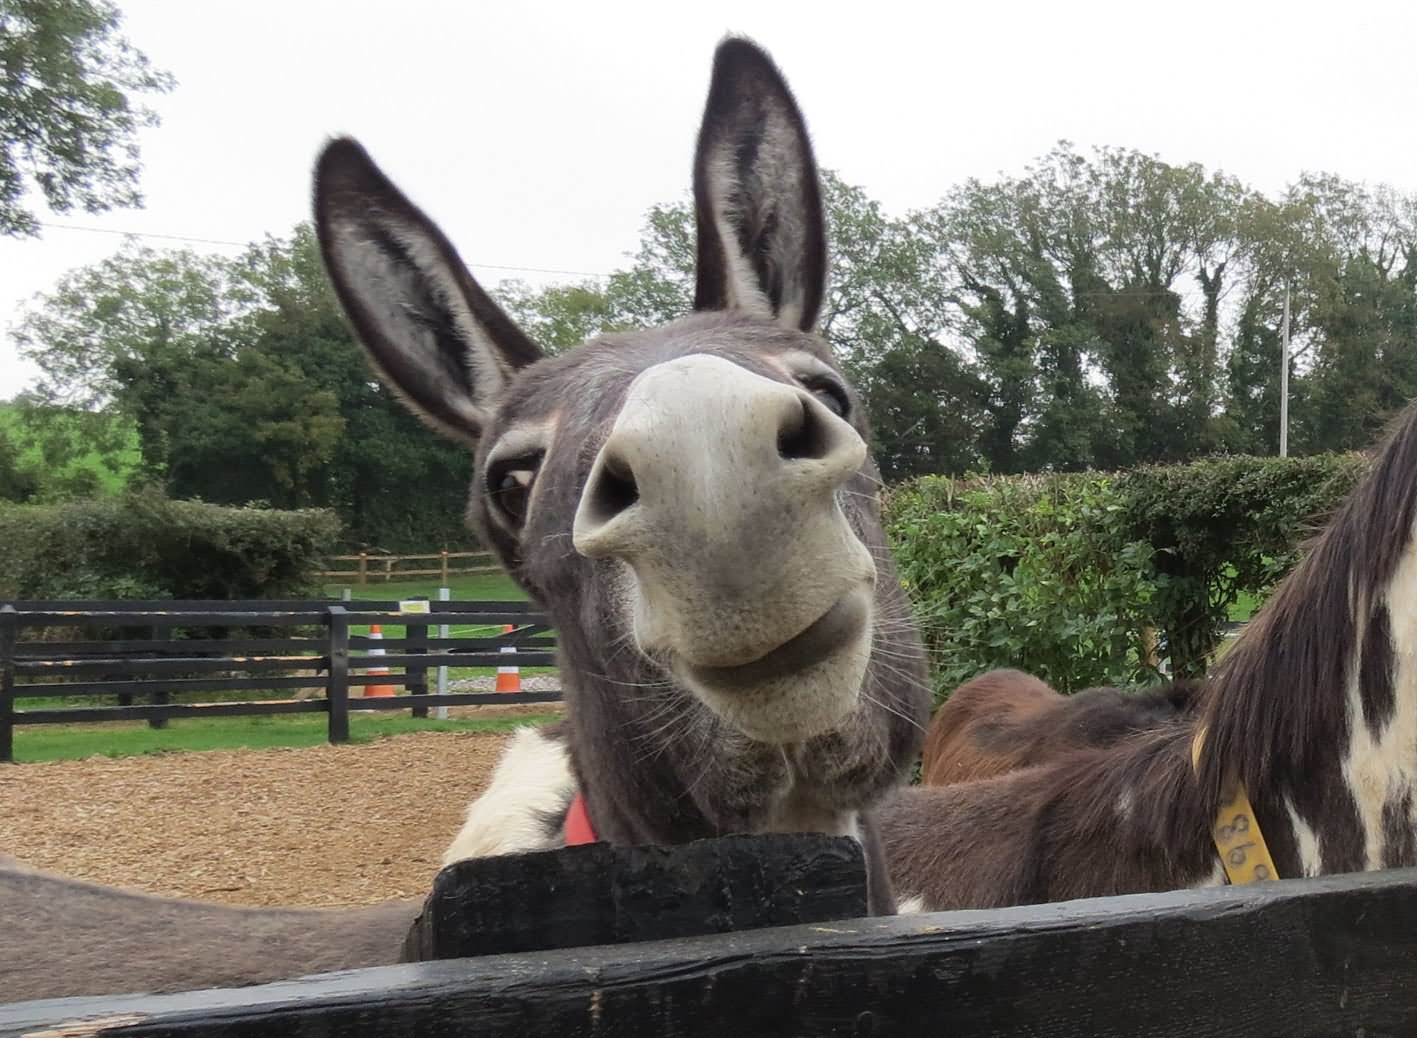 Very Cute Couple Wallpaper 15 Most Funny Donkey Face Pictures That Will Make You Laugh